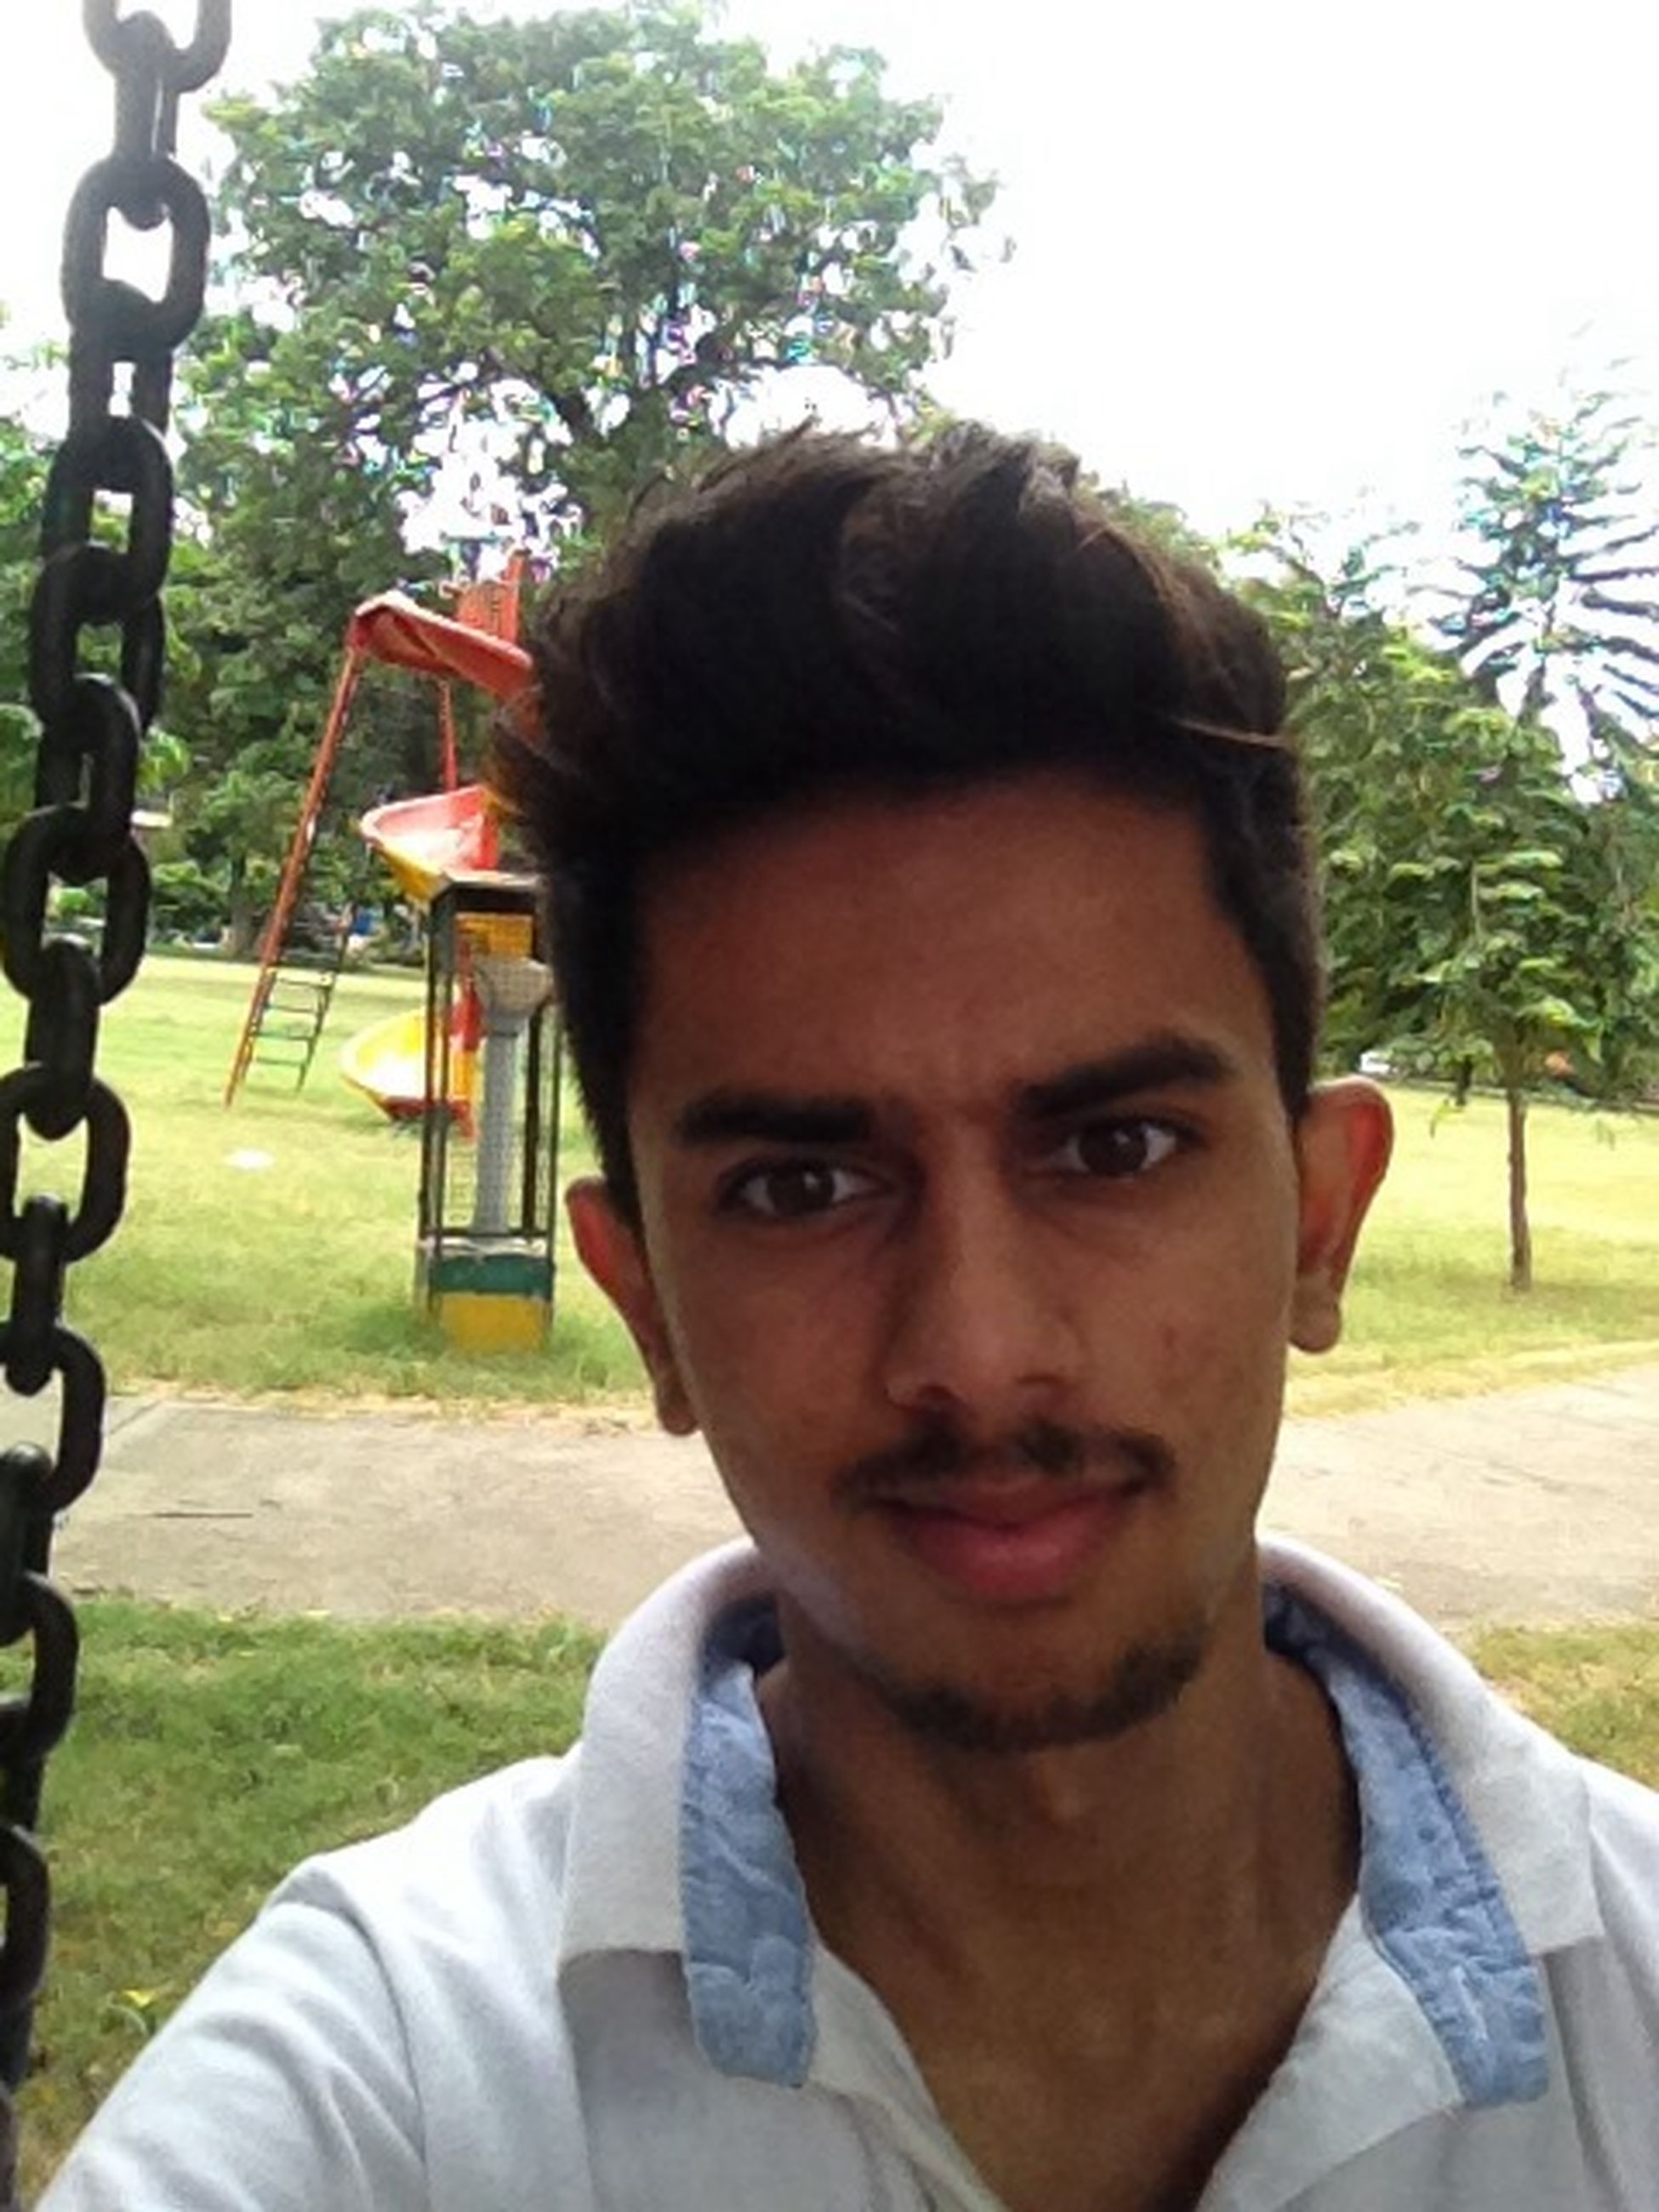 looking at camera, portrait, headshot, person, front view, lifestyles, young adult, leisure activity, tree, young men, close-up, smiling, head and shoulders, park - man made space, focus on foreground, day, casual clothing, outdoors